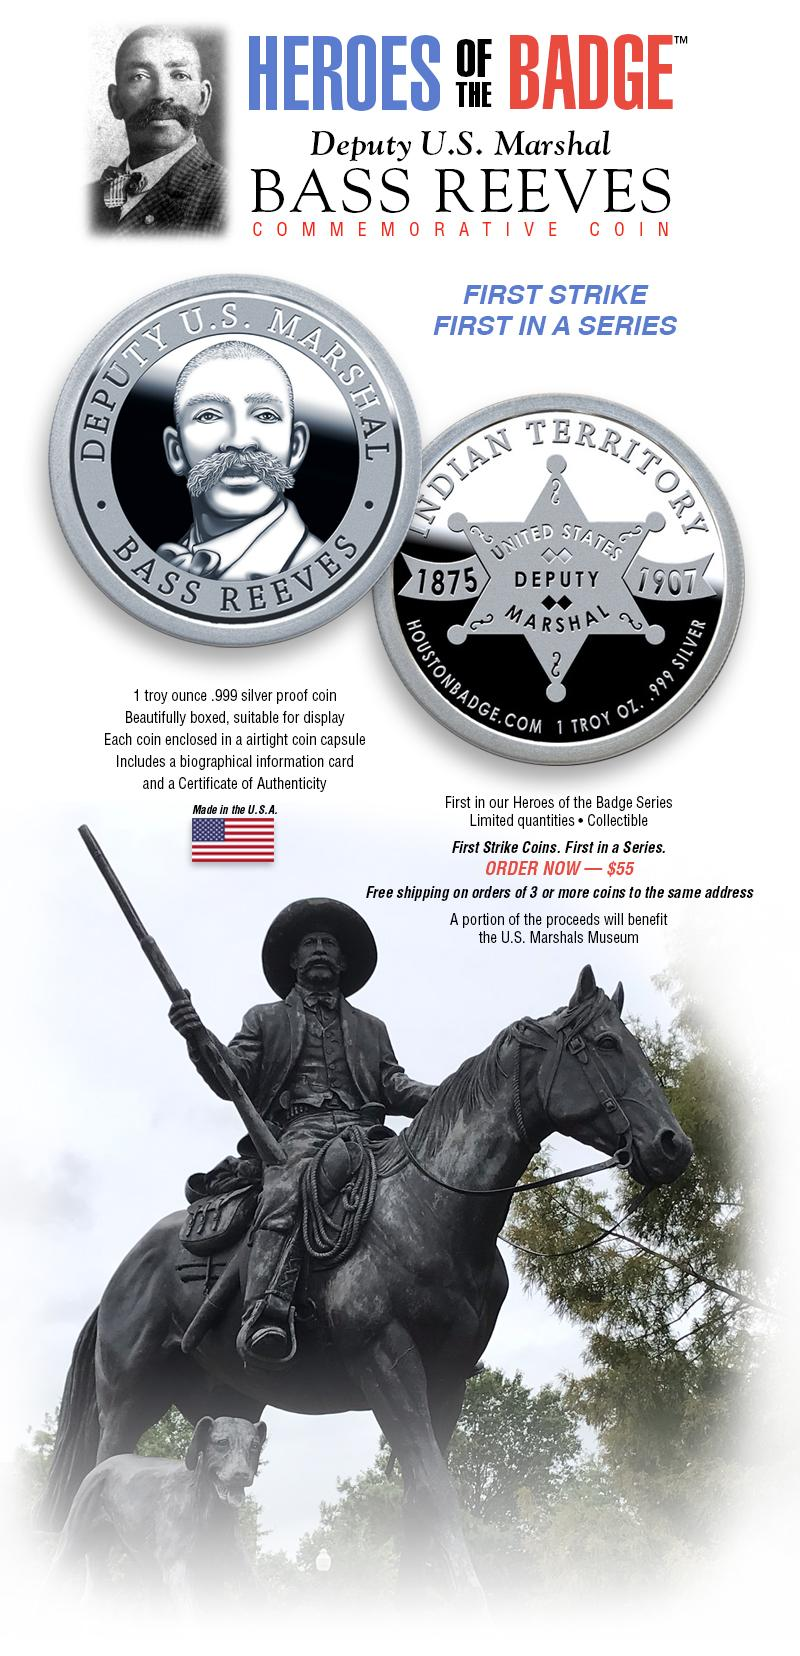 Deputy U.S. Marshal Bass Reeves 1 oz silver proof coin